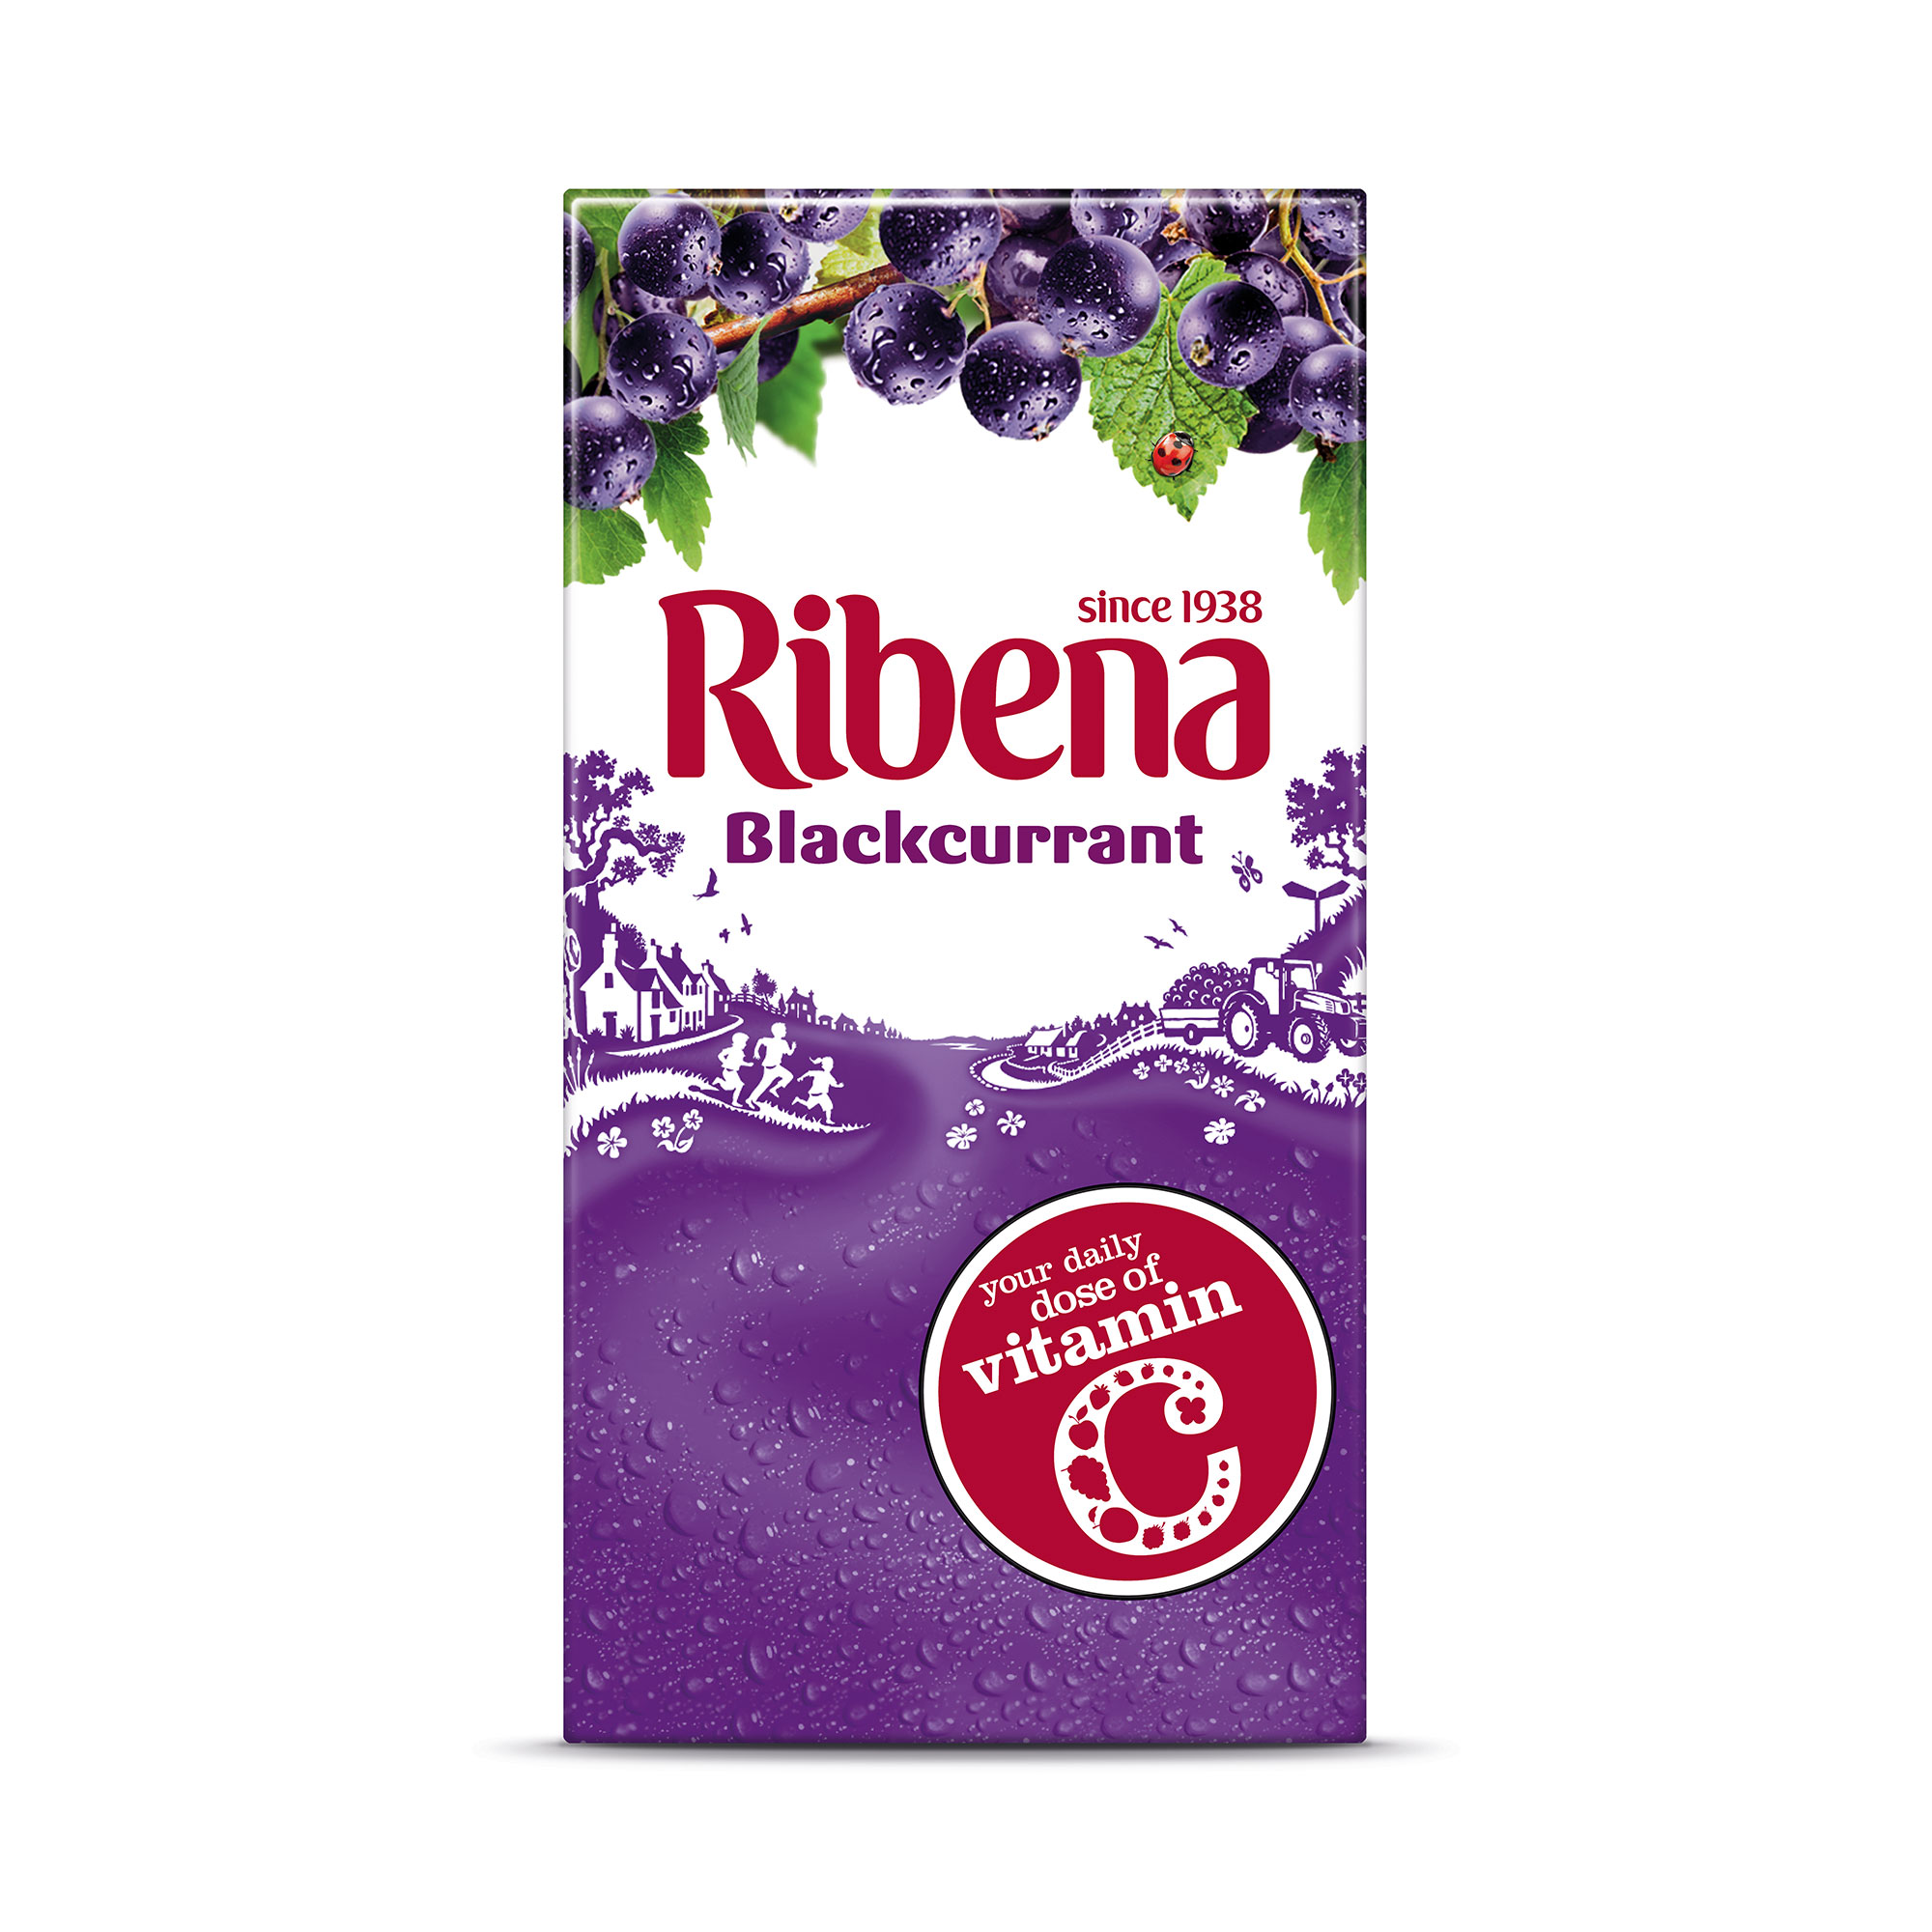 Hows Your Not From Concentrate Orange Juice besides History Of Bristol Makers Ribena further Clipart Square Black Box as well S plastic hook furthermore 219. on juice carton